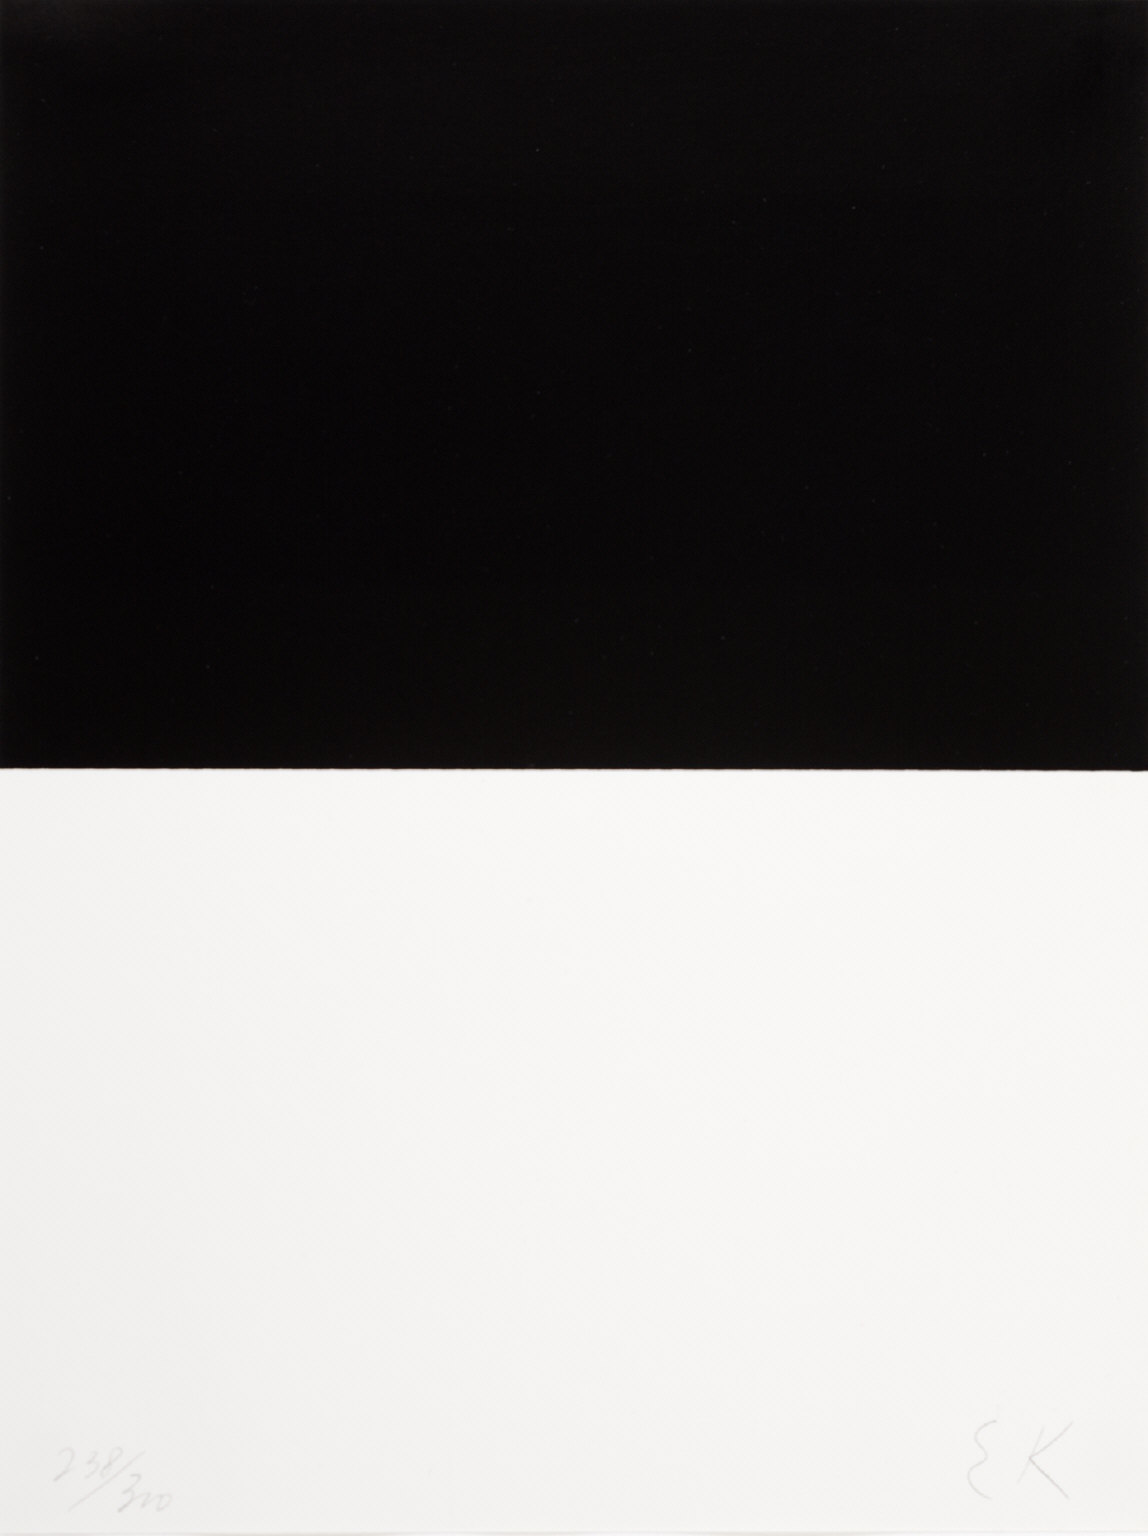 Untitled, from the portfolio, Works by Artists in the New York Collection for St